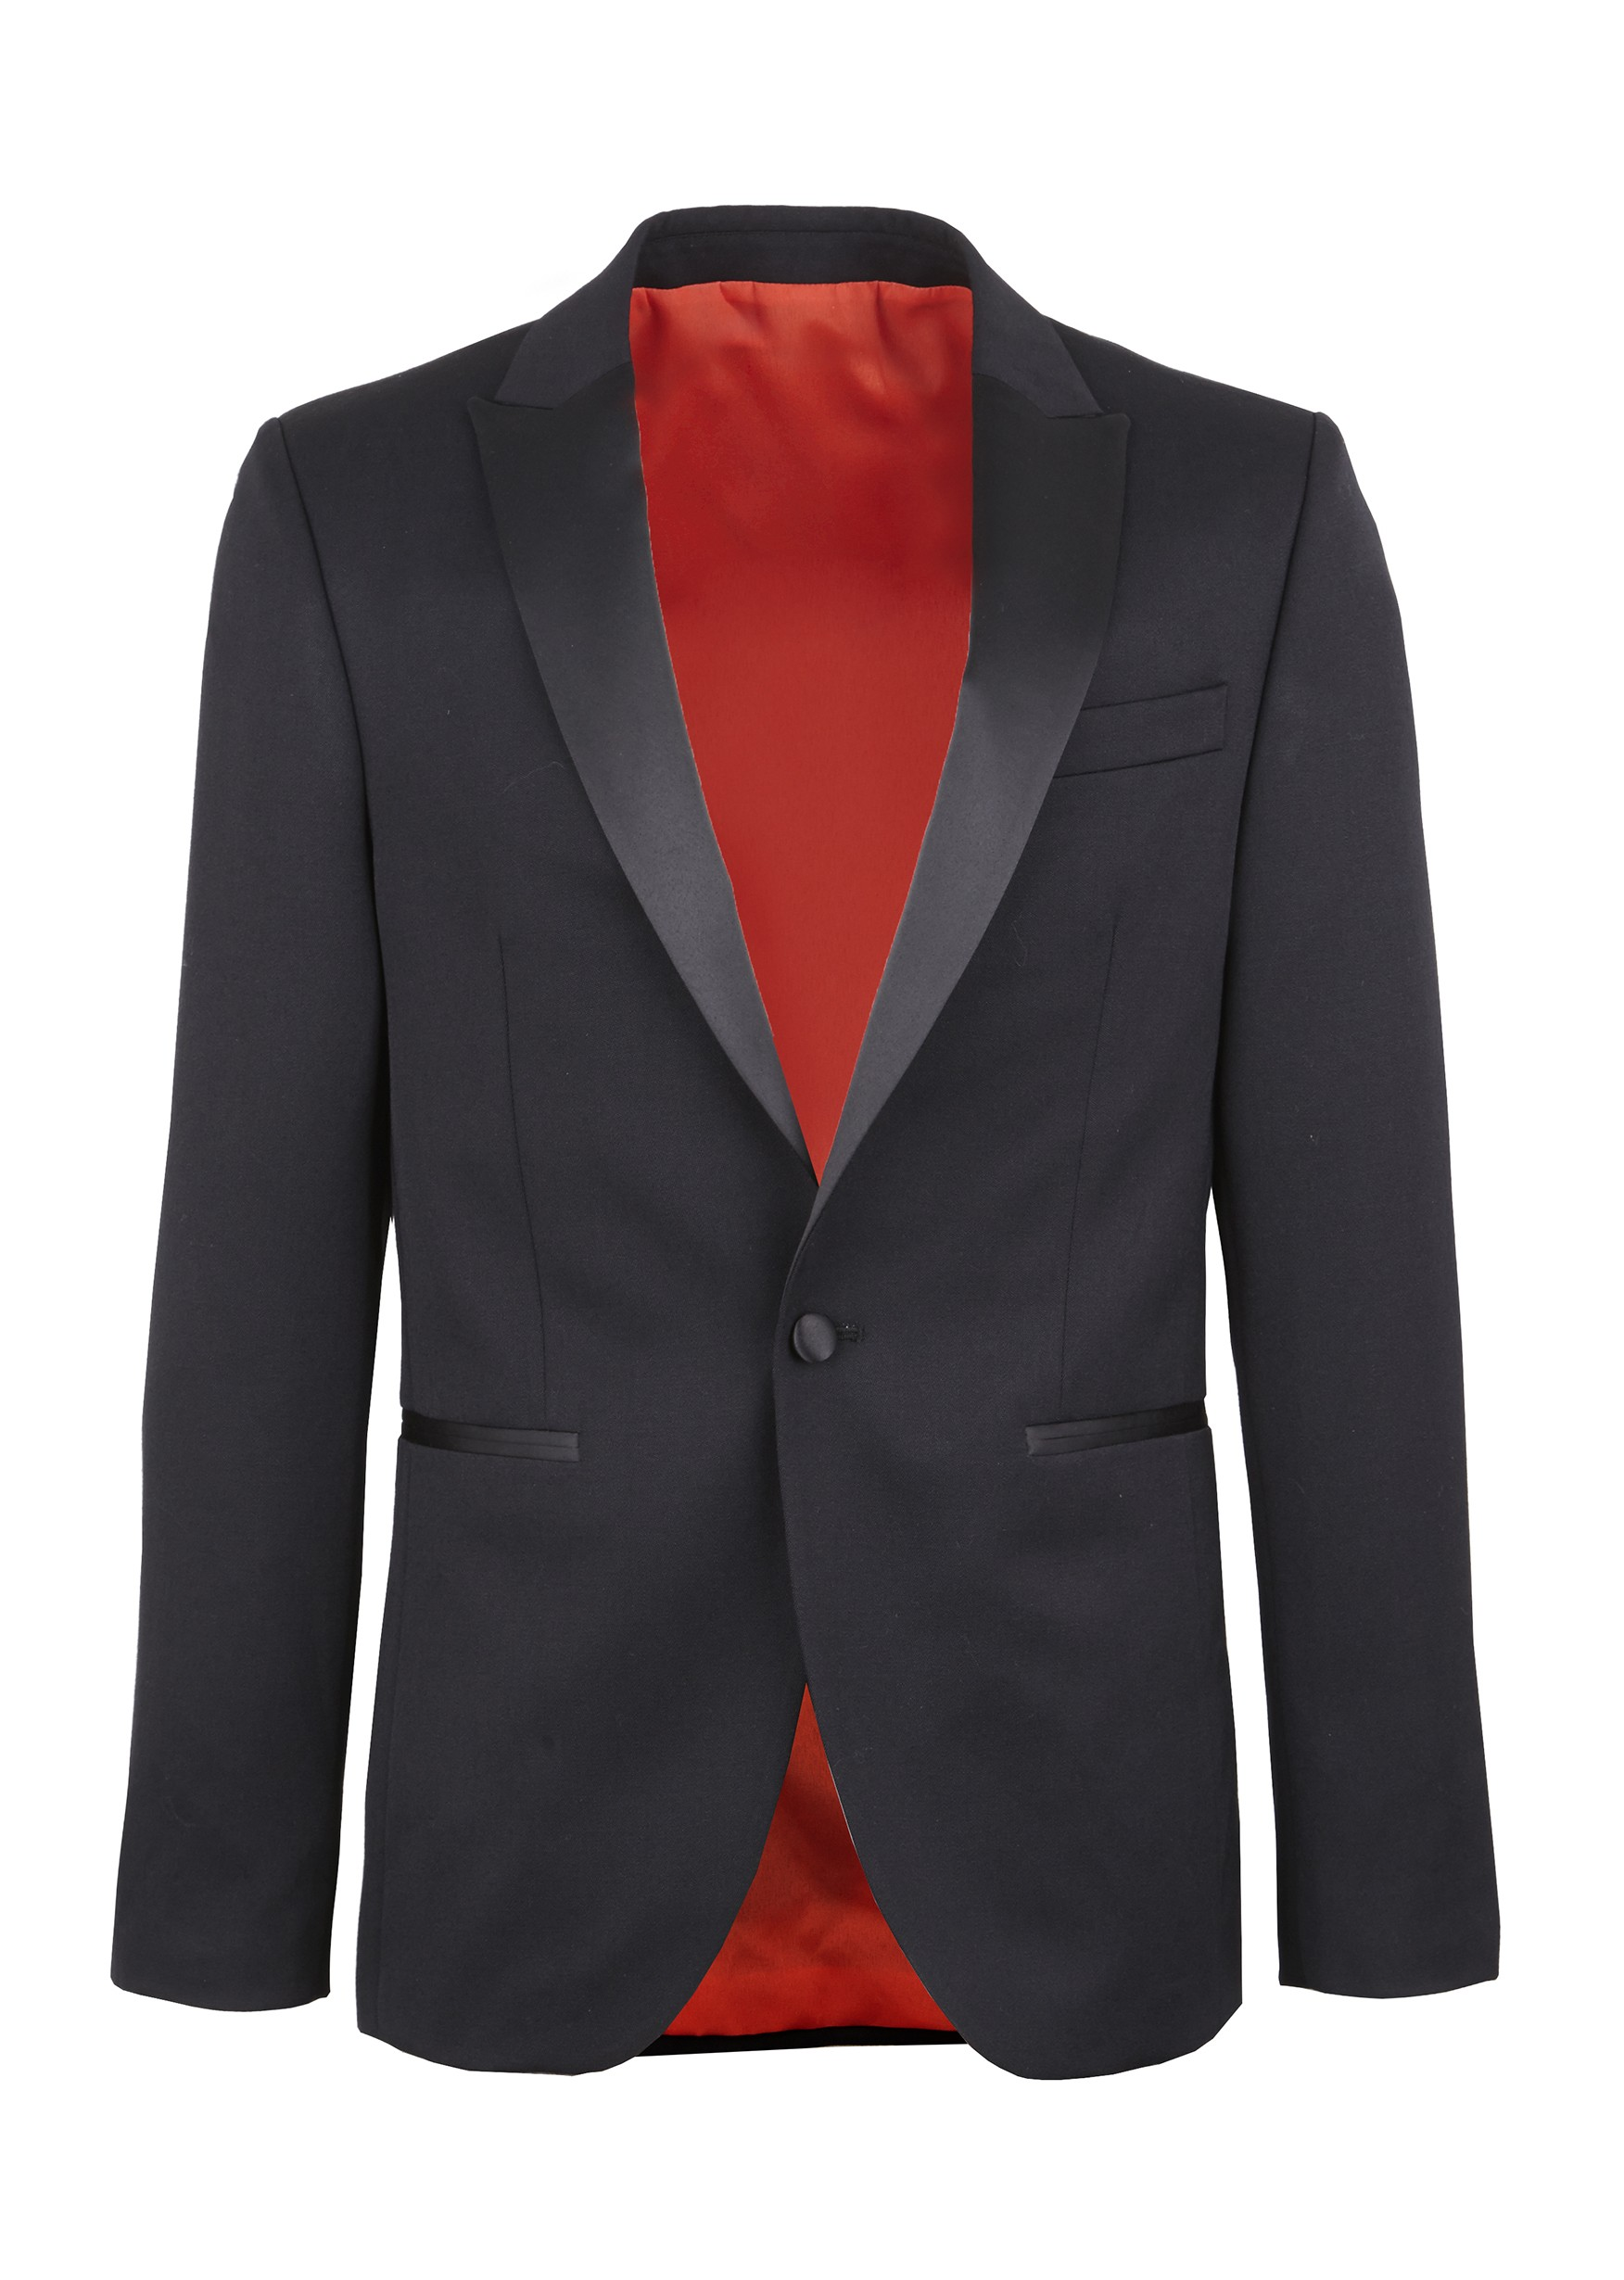 Tuxedos and Dinner Suits at Johnny Tuxedo